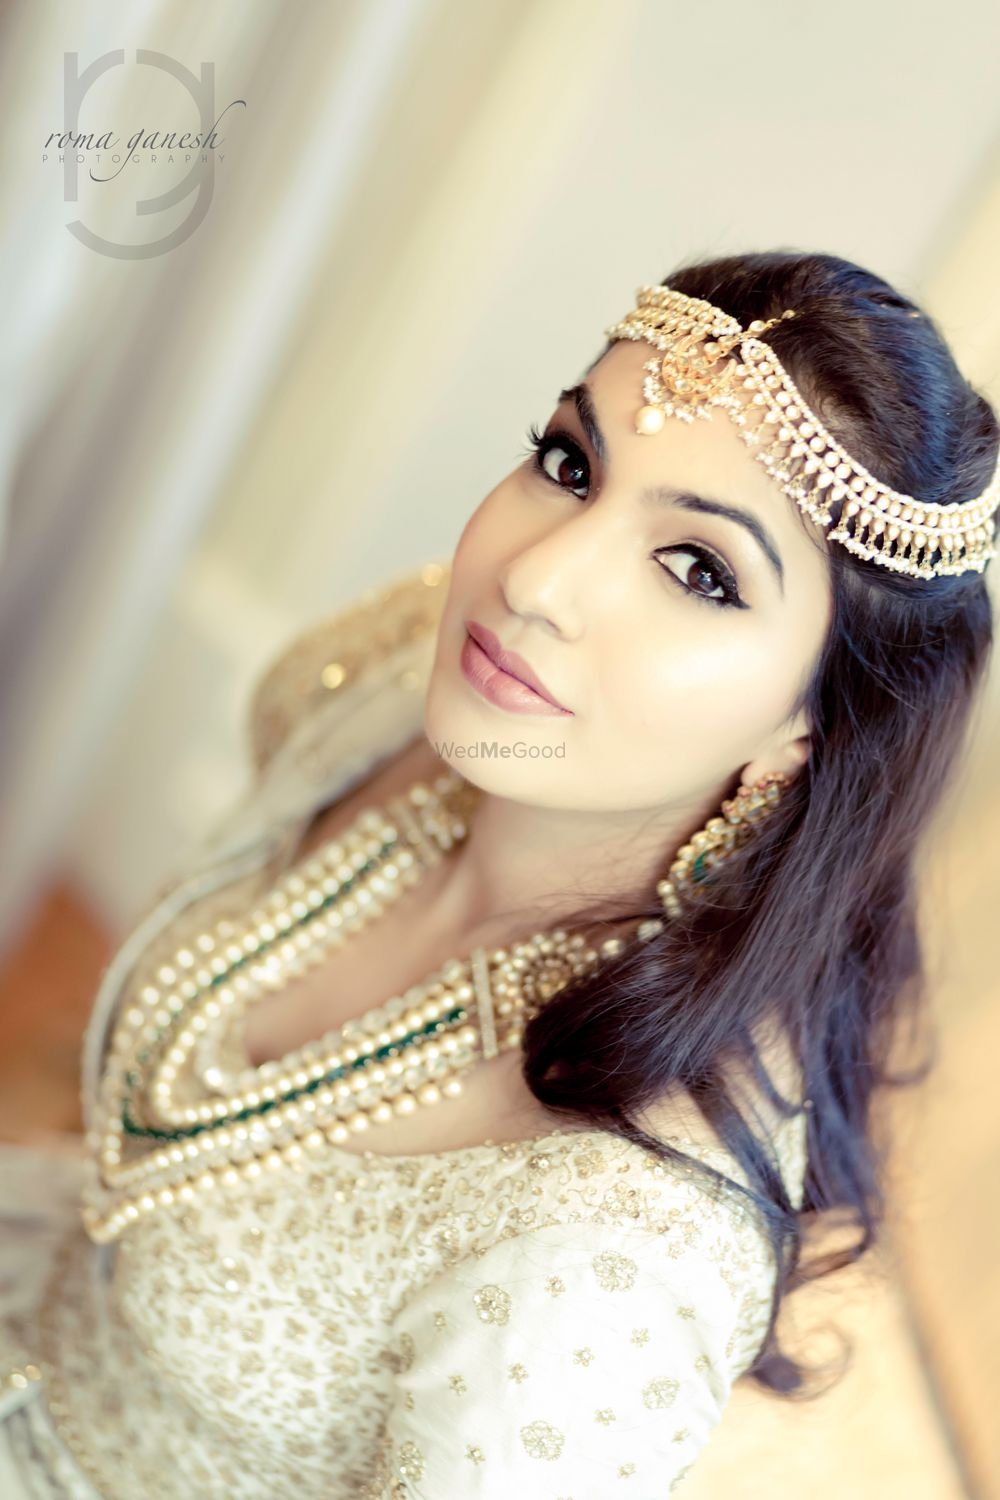 Photo From Destination Weddings - By Roma Ganesh Photography